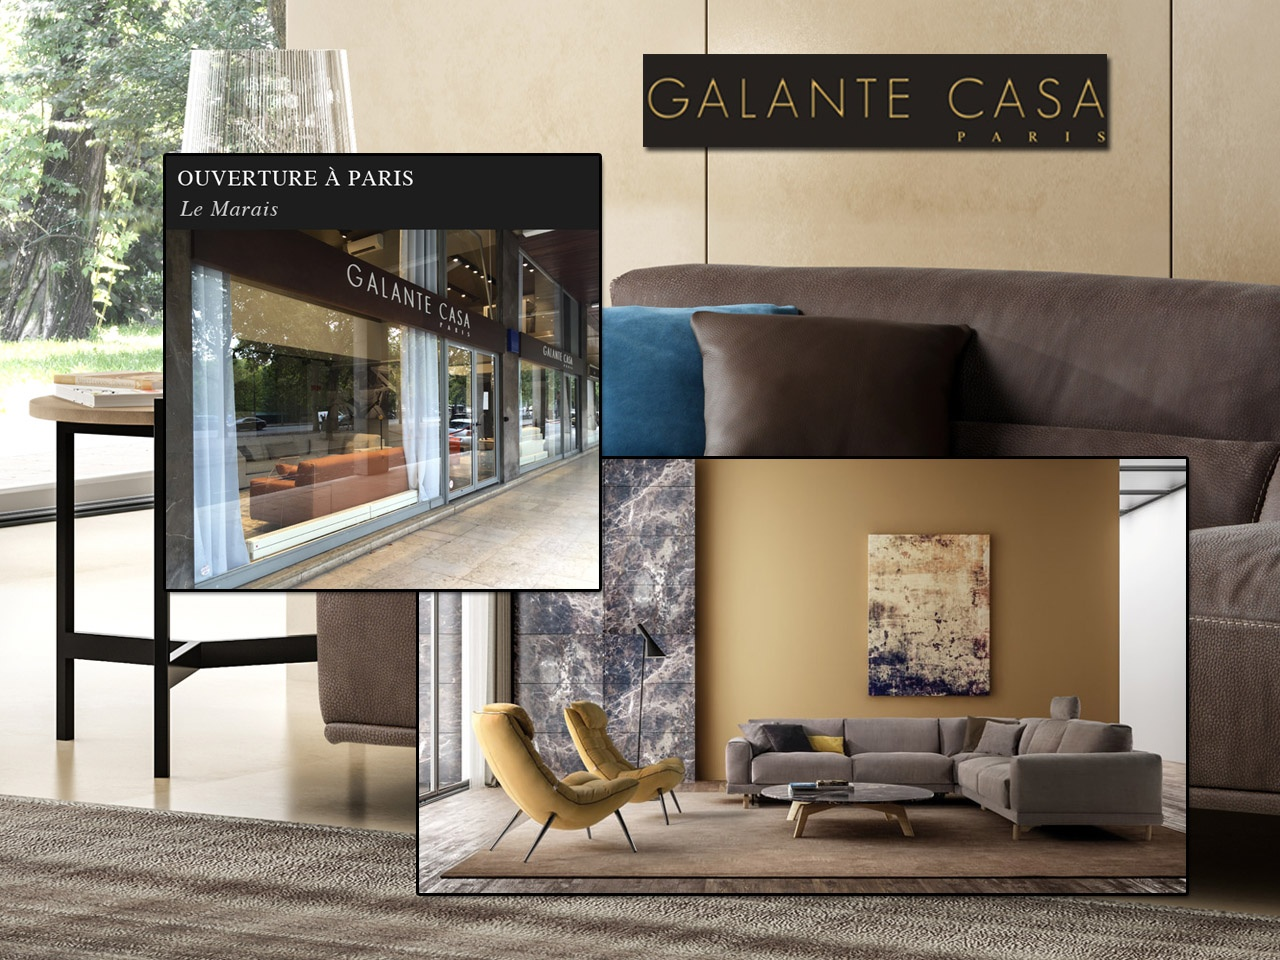 Univers habitat march mobilier galante casa premi re boutique p - Esprit magasin paris ...